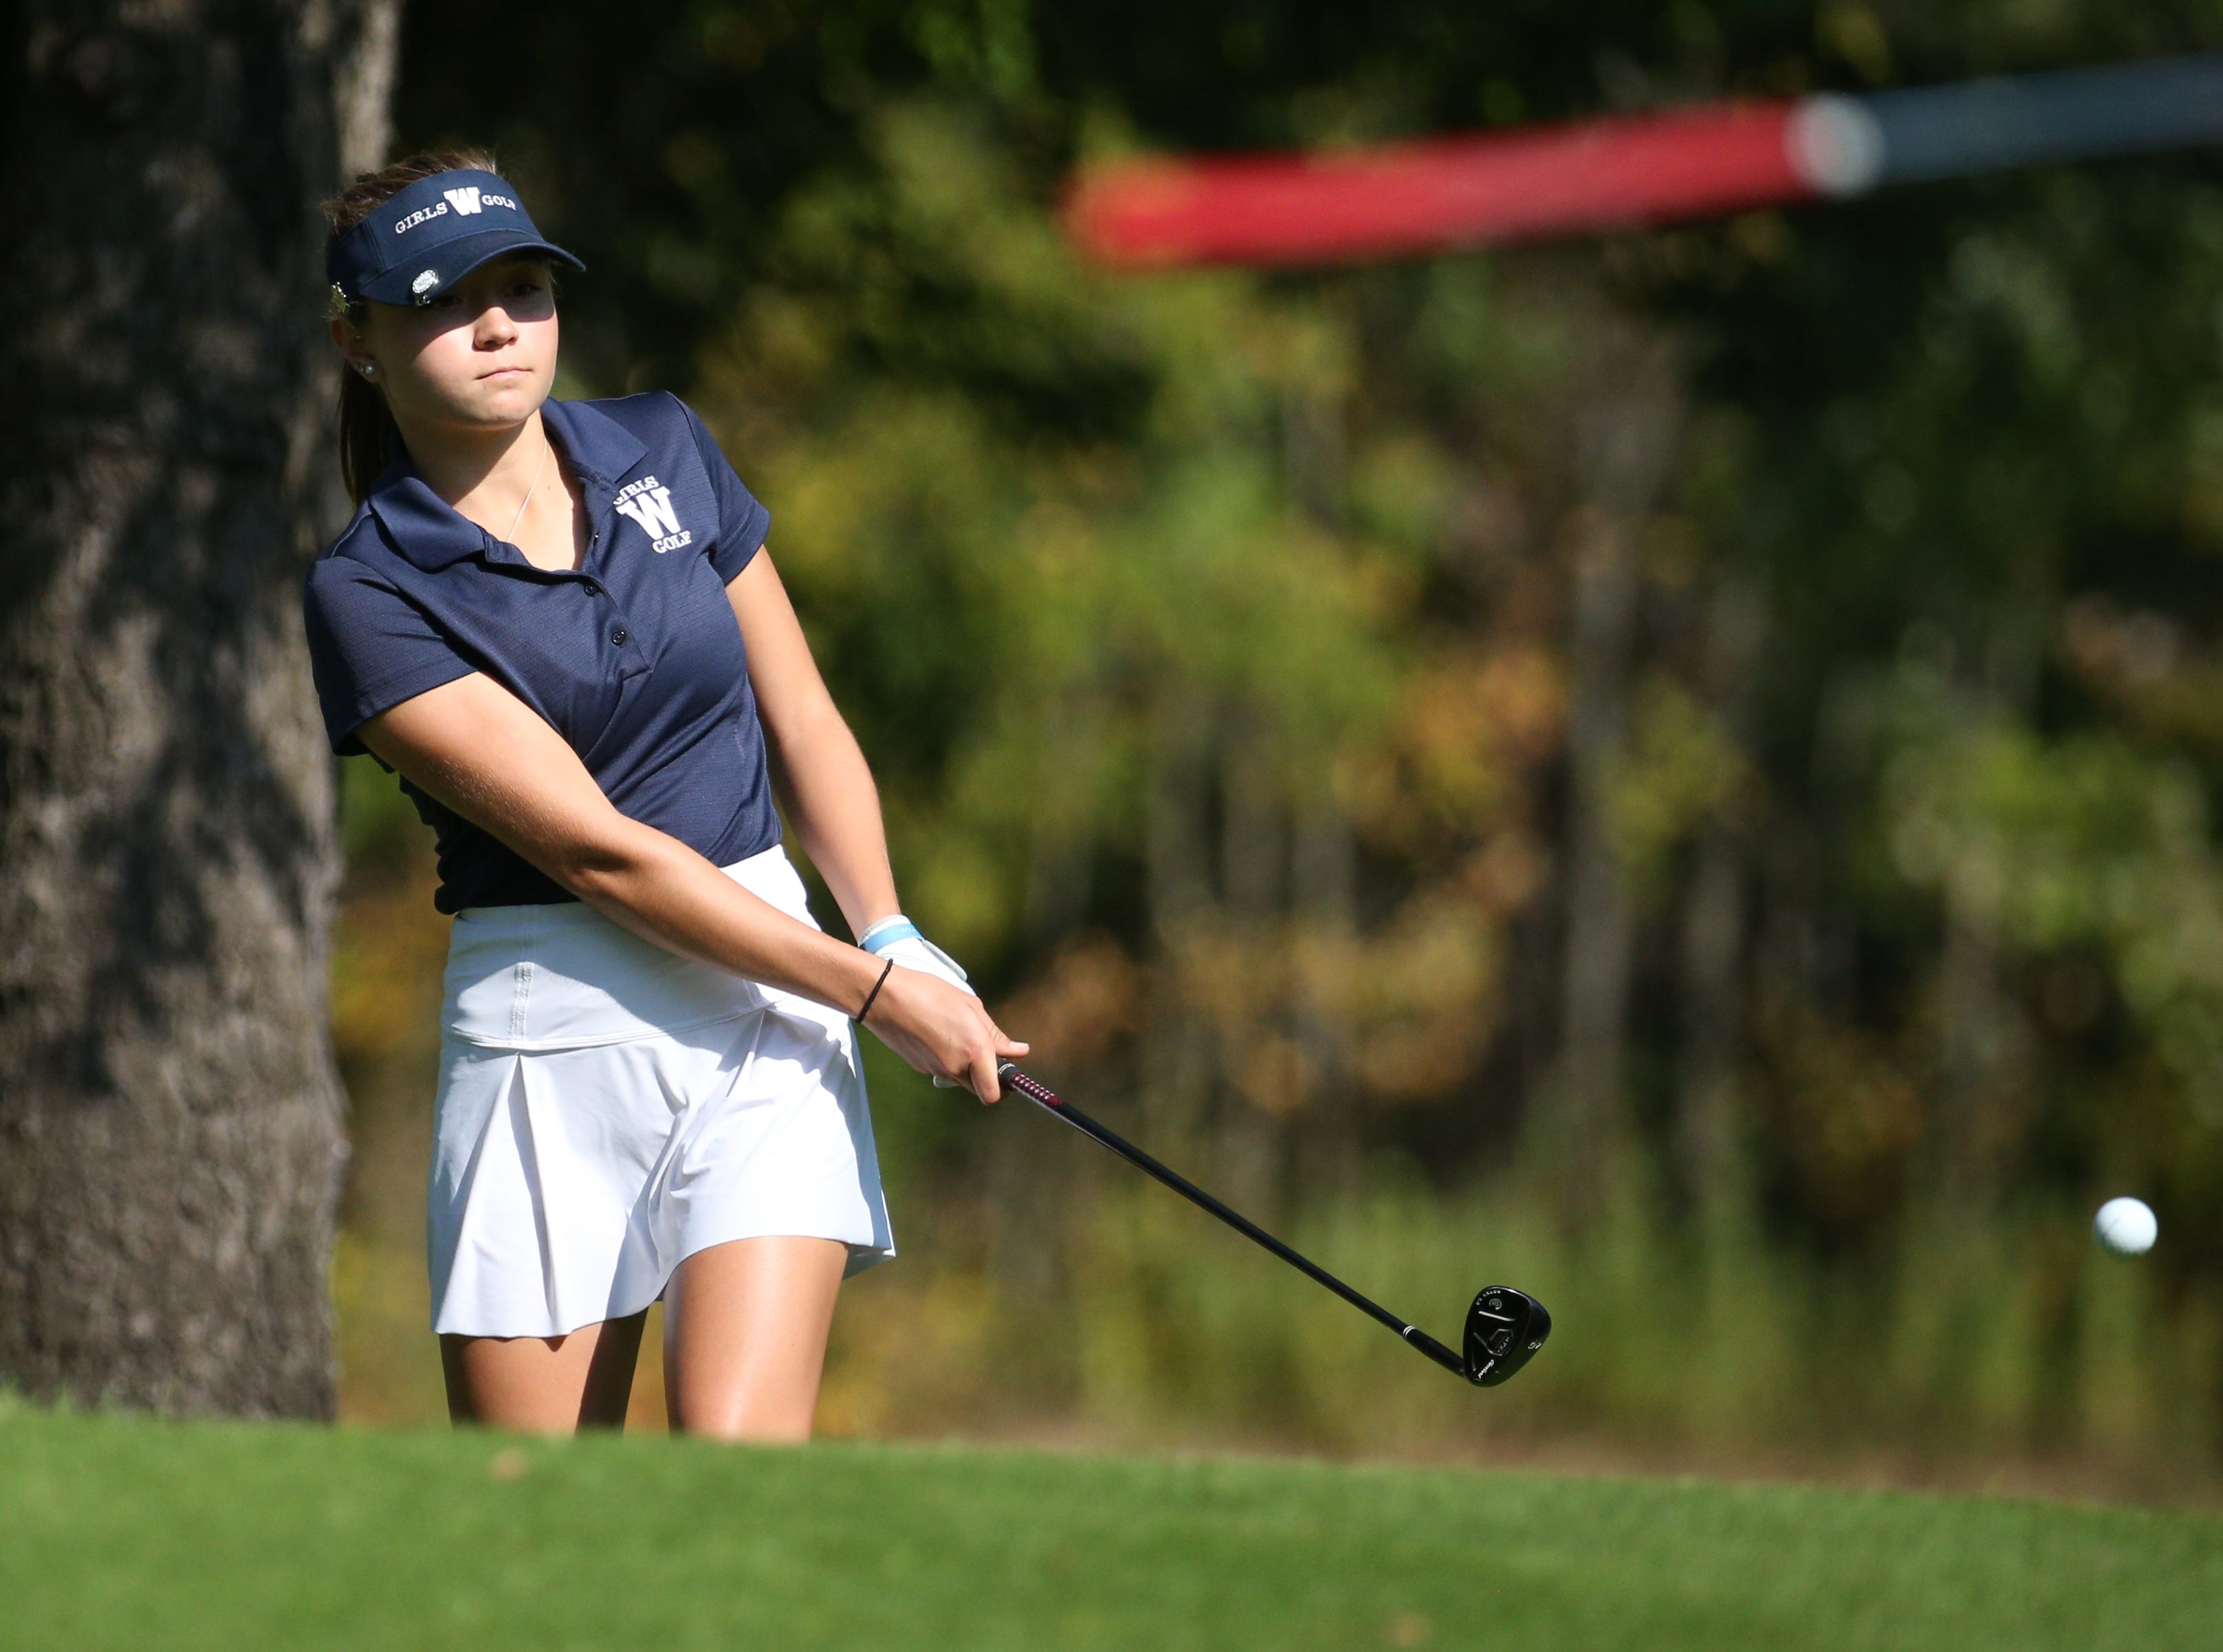 Mikah McDonnell chips on to 2 at the Section V girls golf championship at Deerfield Country Club.